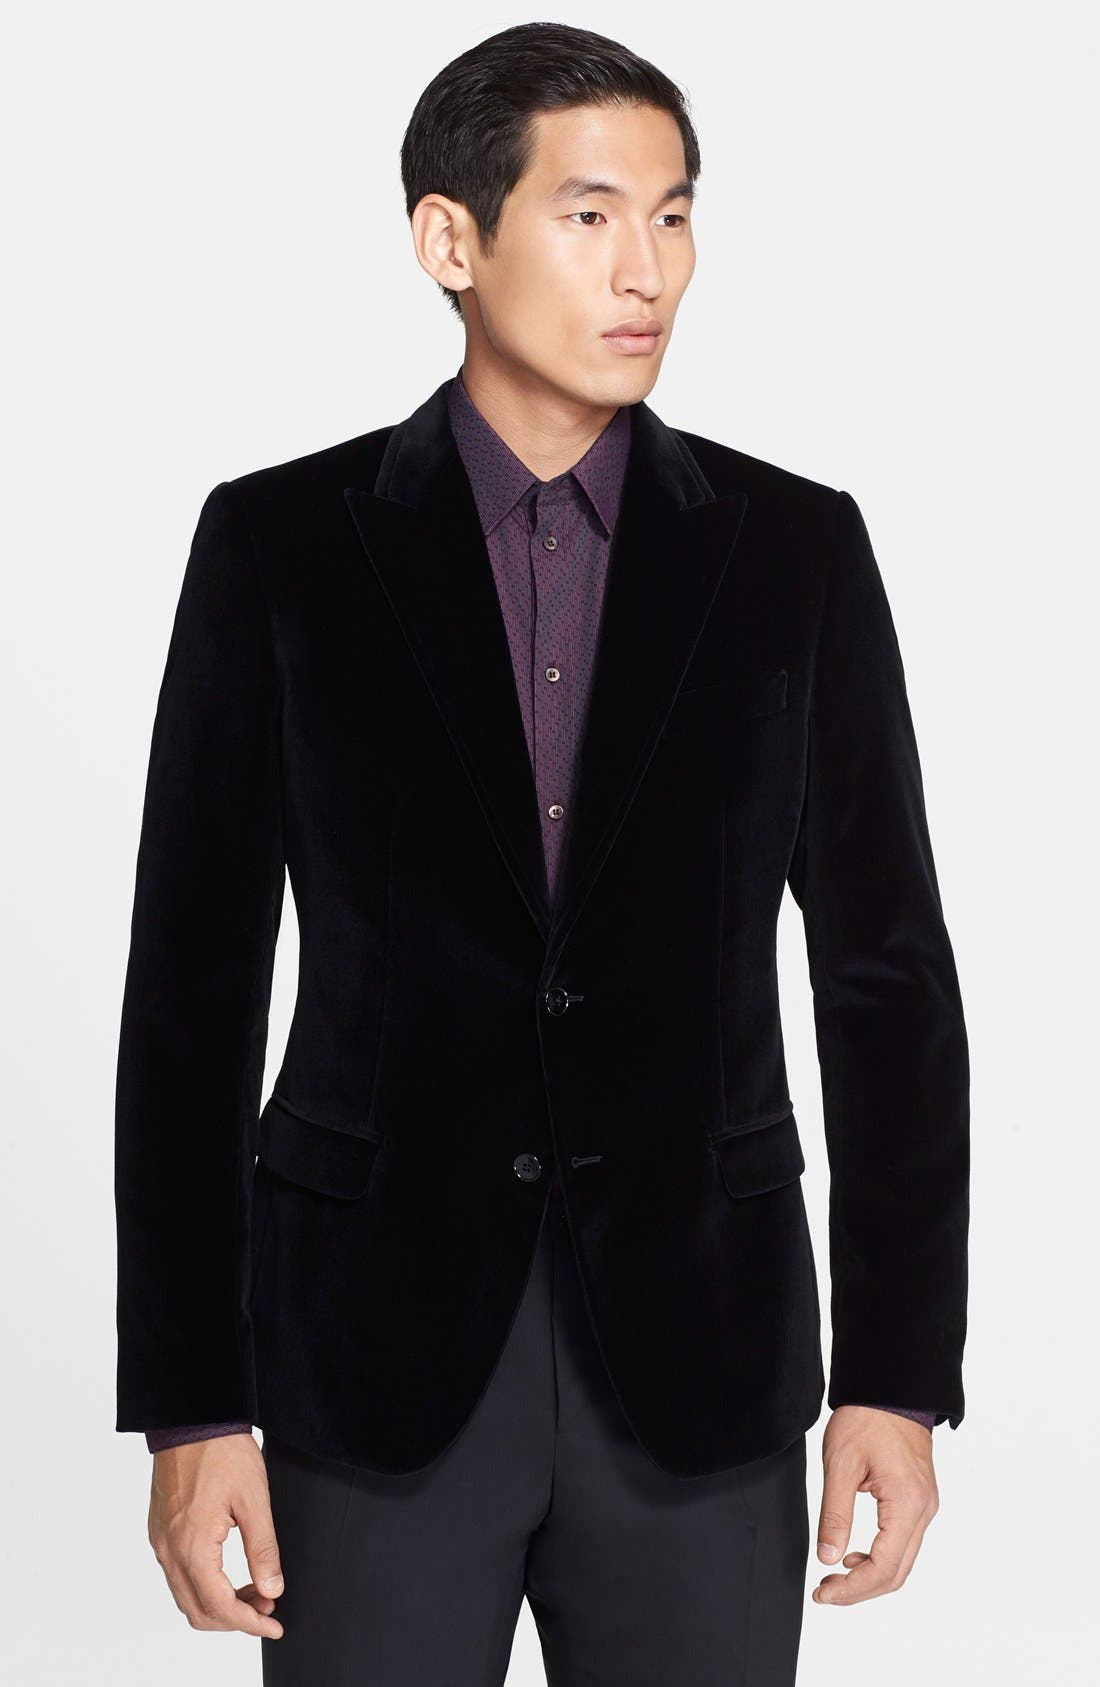 Alternate Image 1 Selected - Dolce&Gabbana 'Martini' Velvet Sport Coat